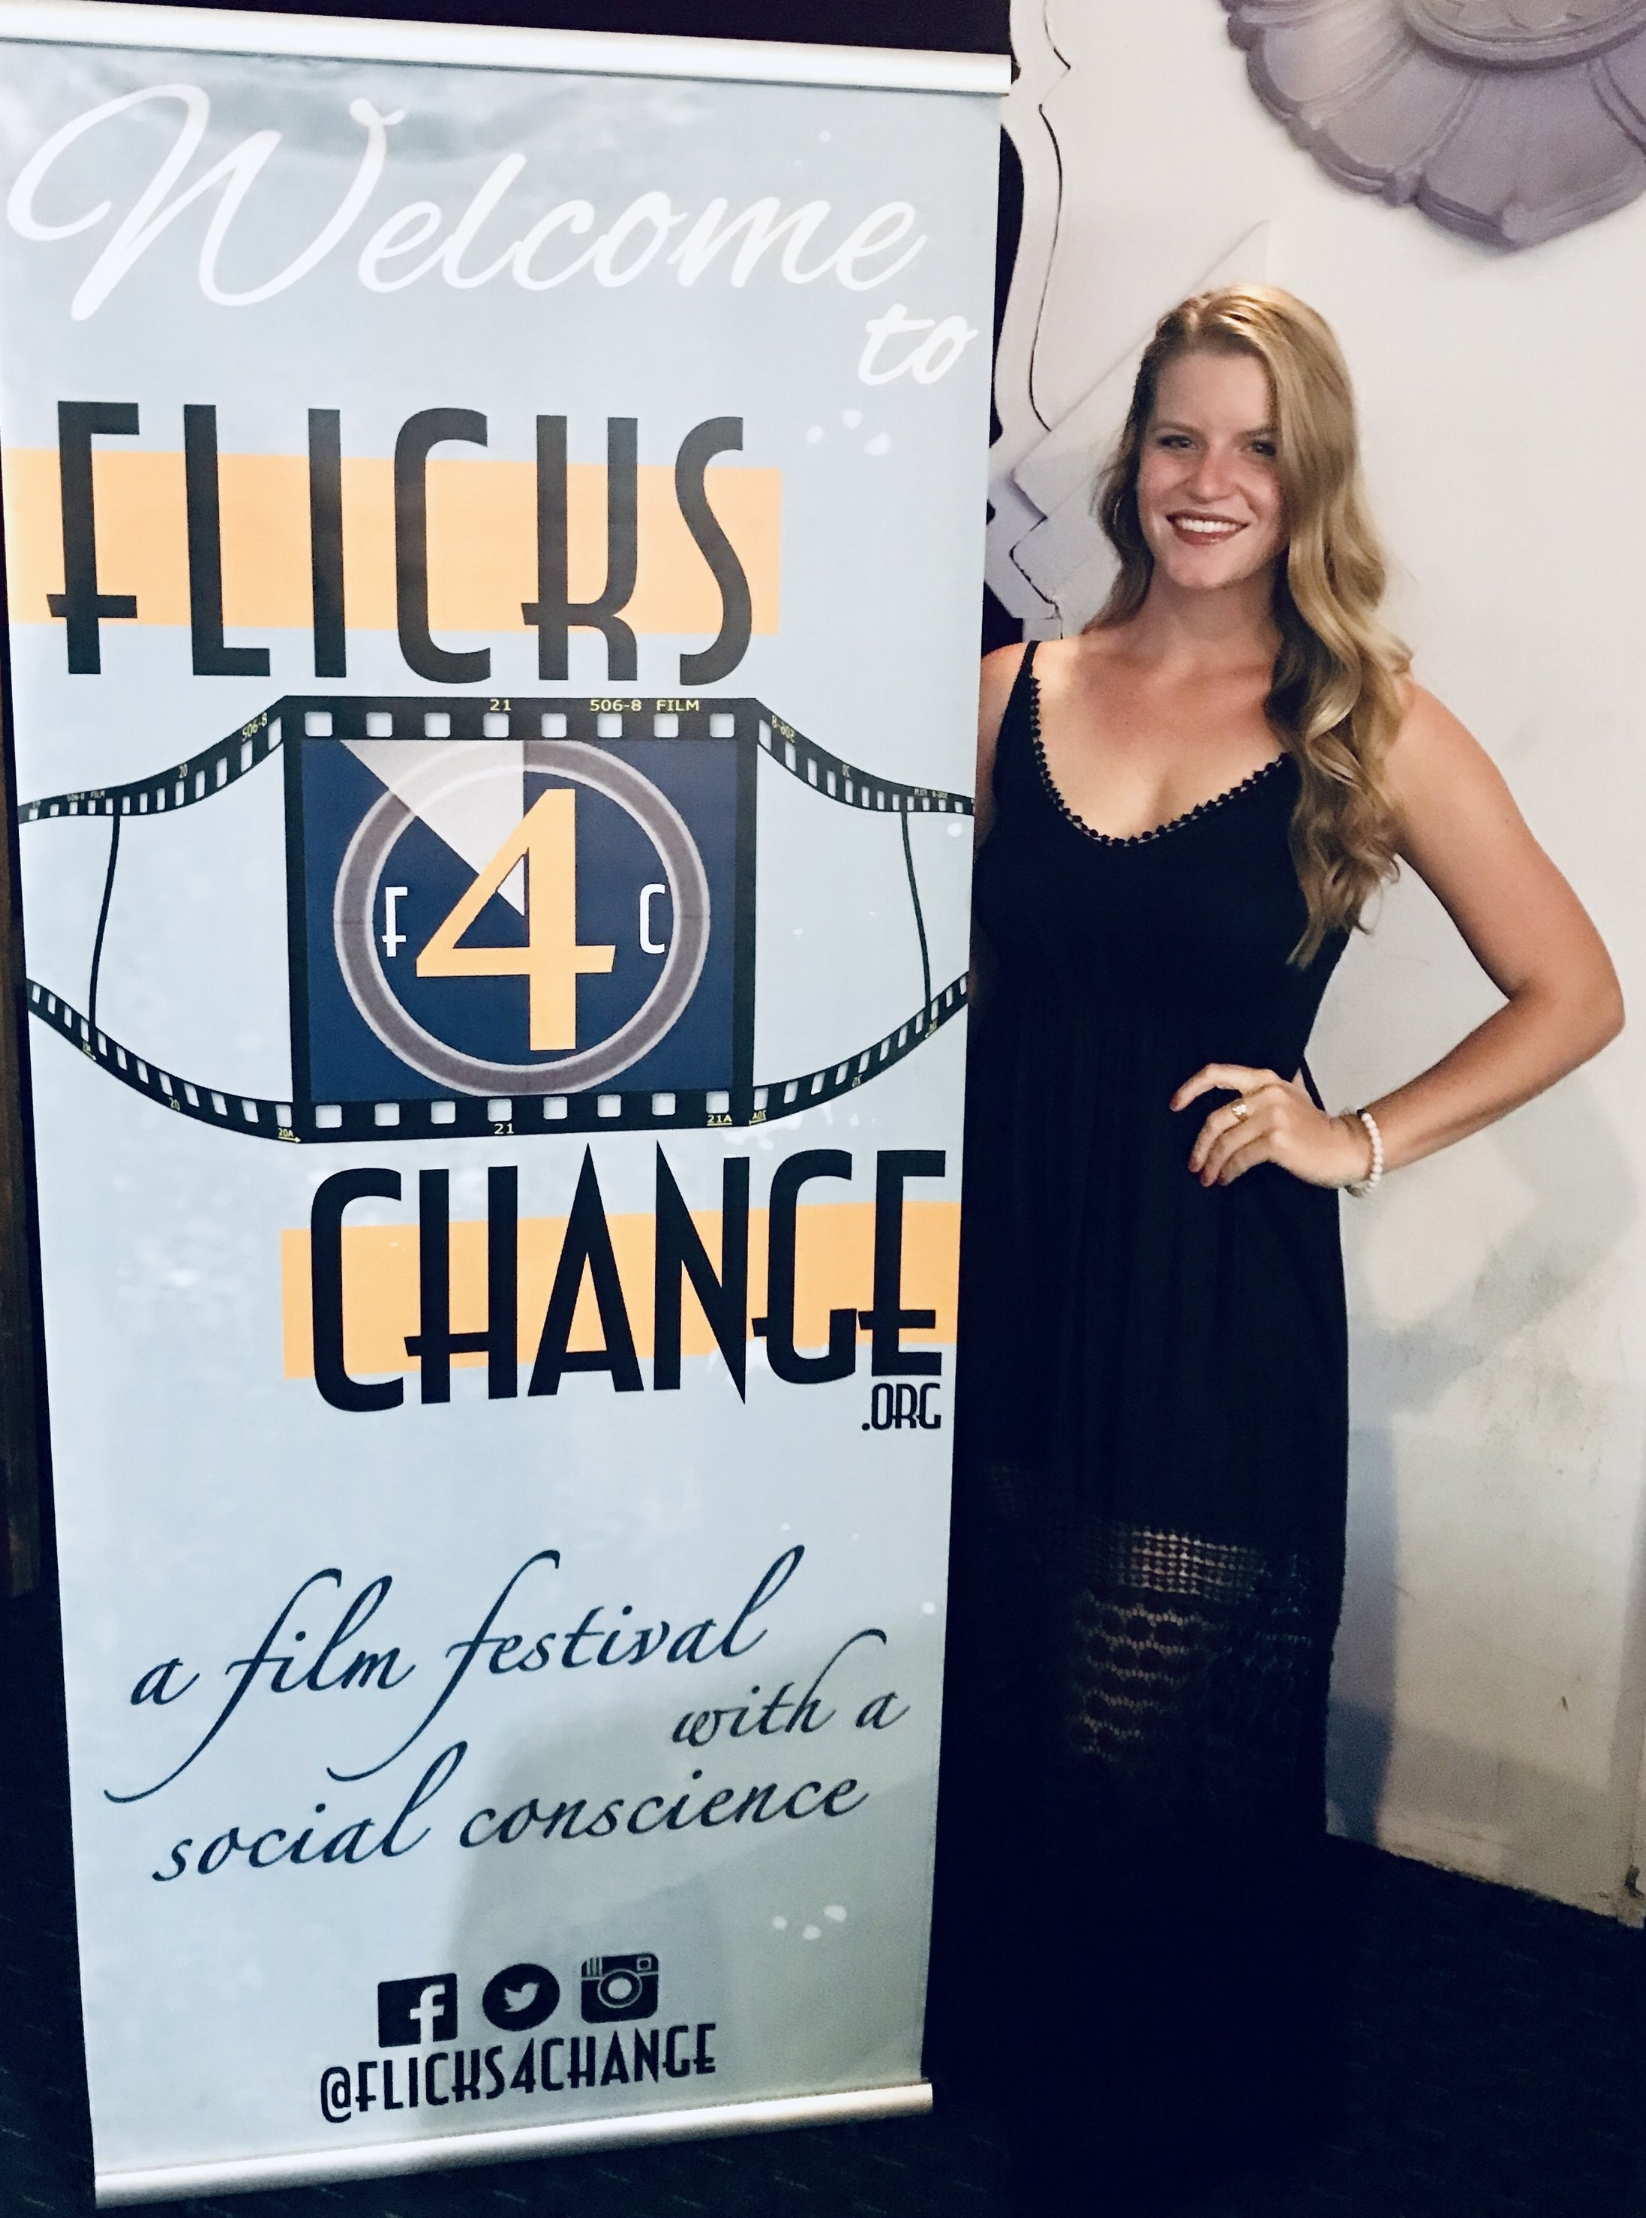 Kelley McDonnell - Festival Consultant. A filmmaker and producer, Kelley brings passion and experience in inspirational storytelling to the F4C team. She is an advocate for our mission and the arts.